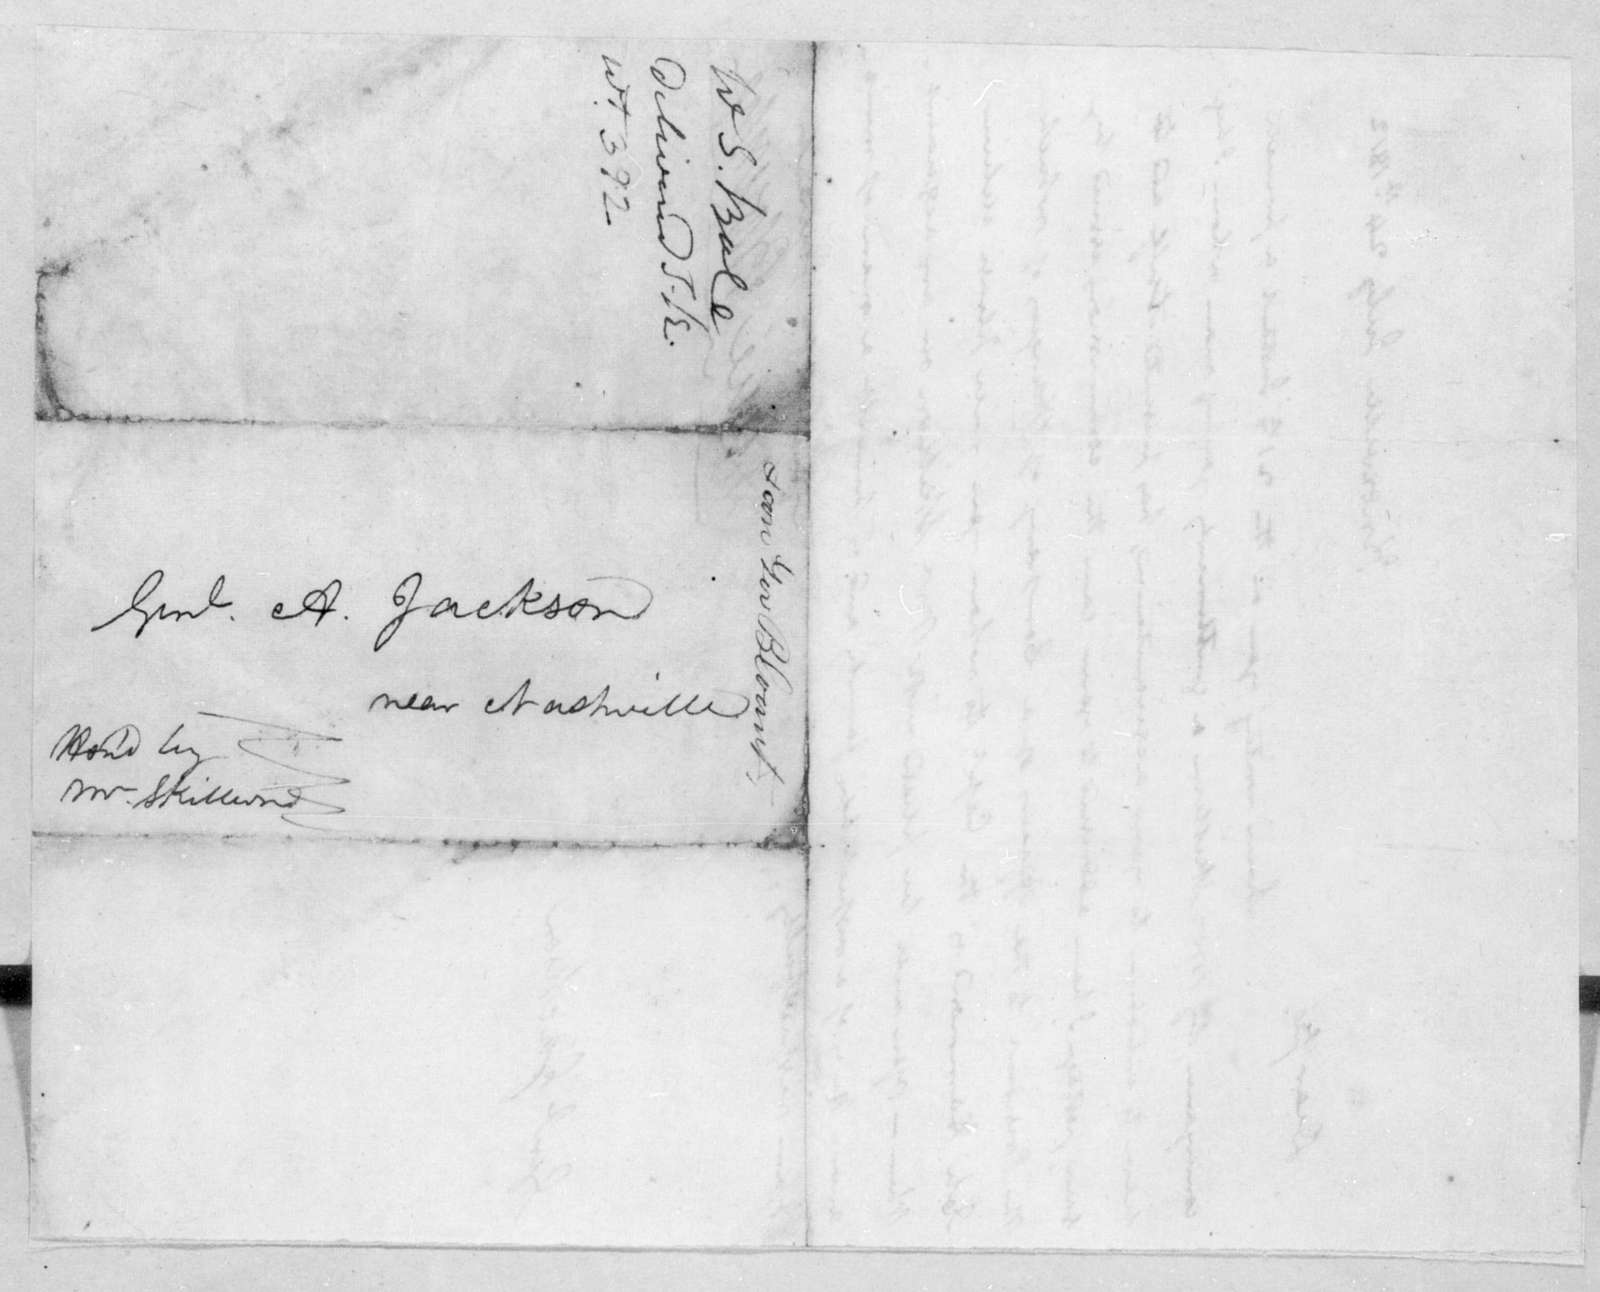 Willie Blount to Andrew Jackson, July 24, 1812